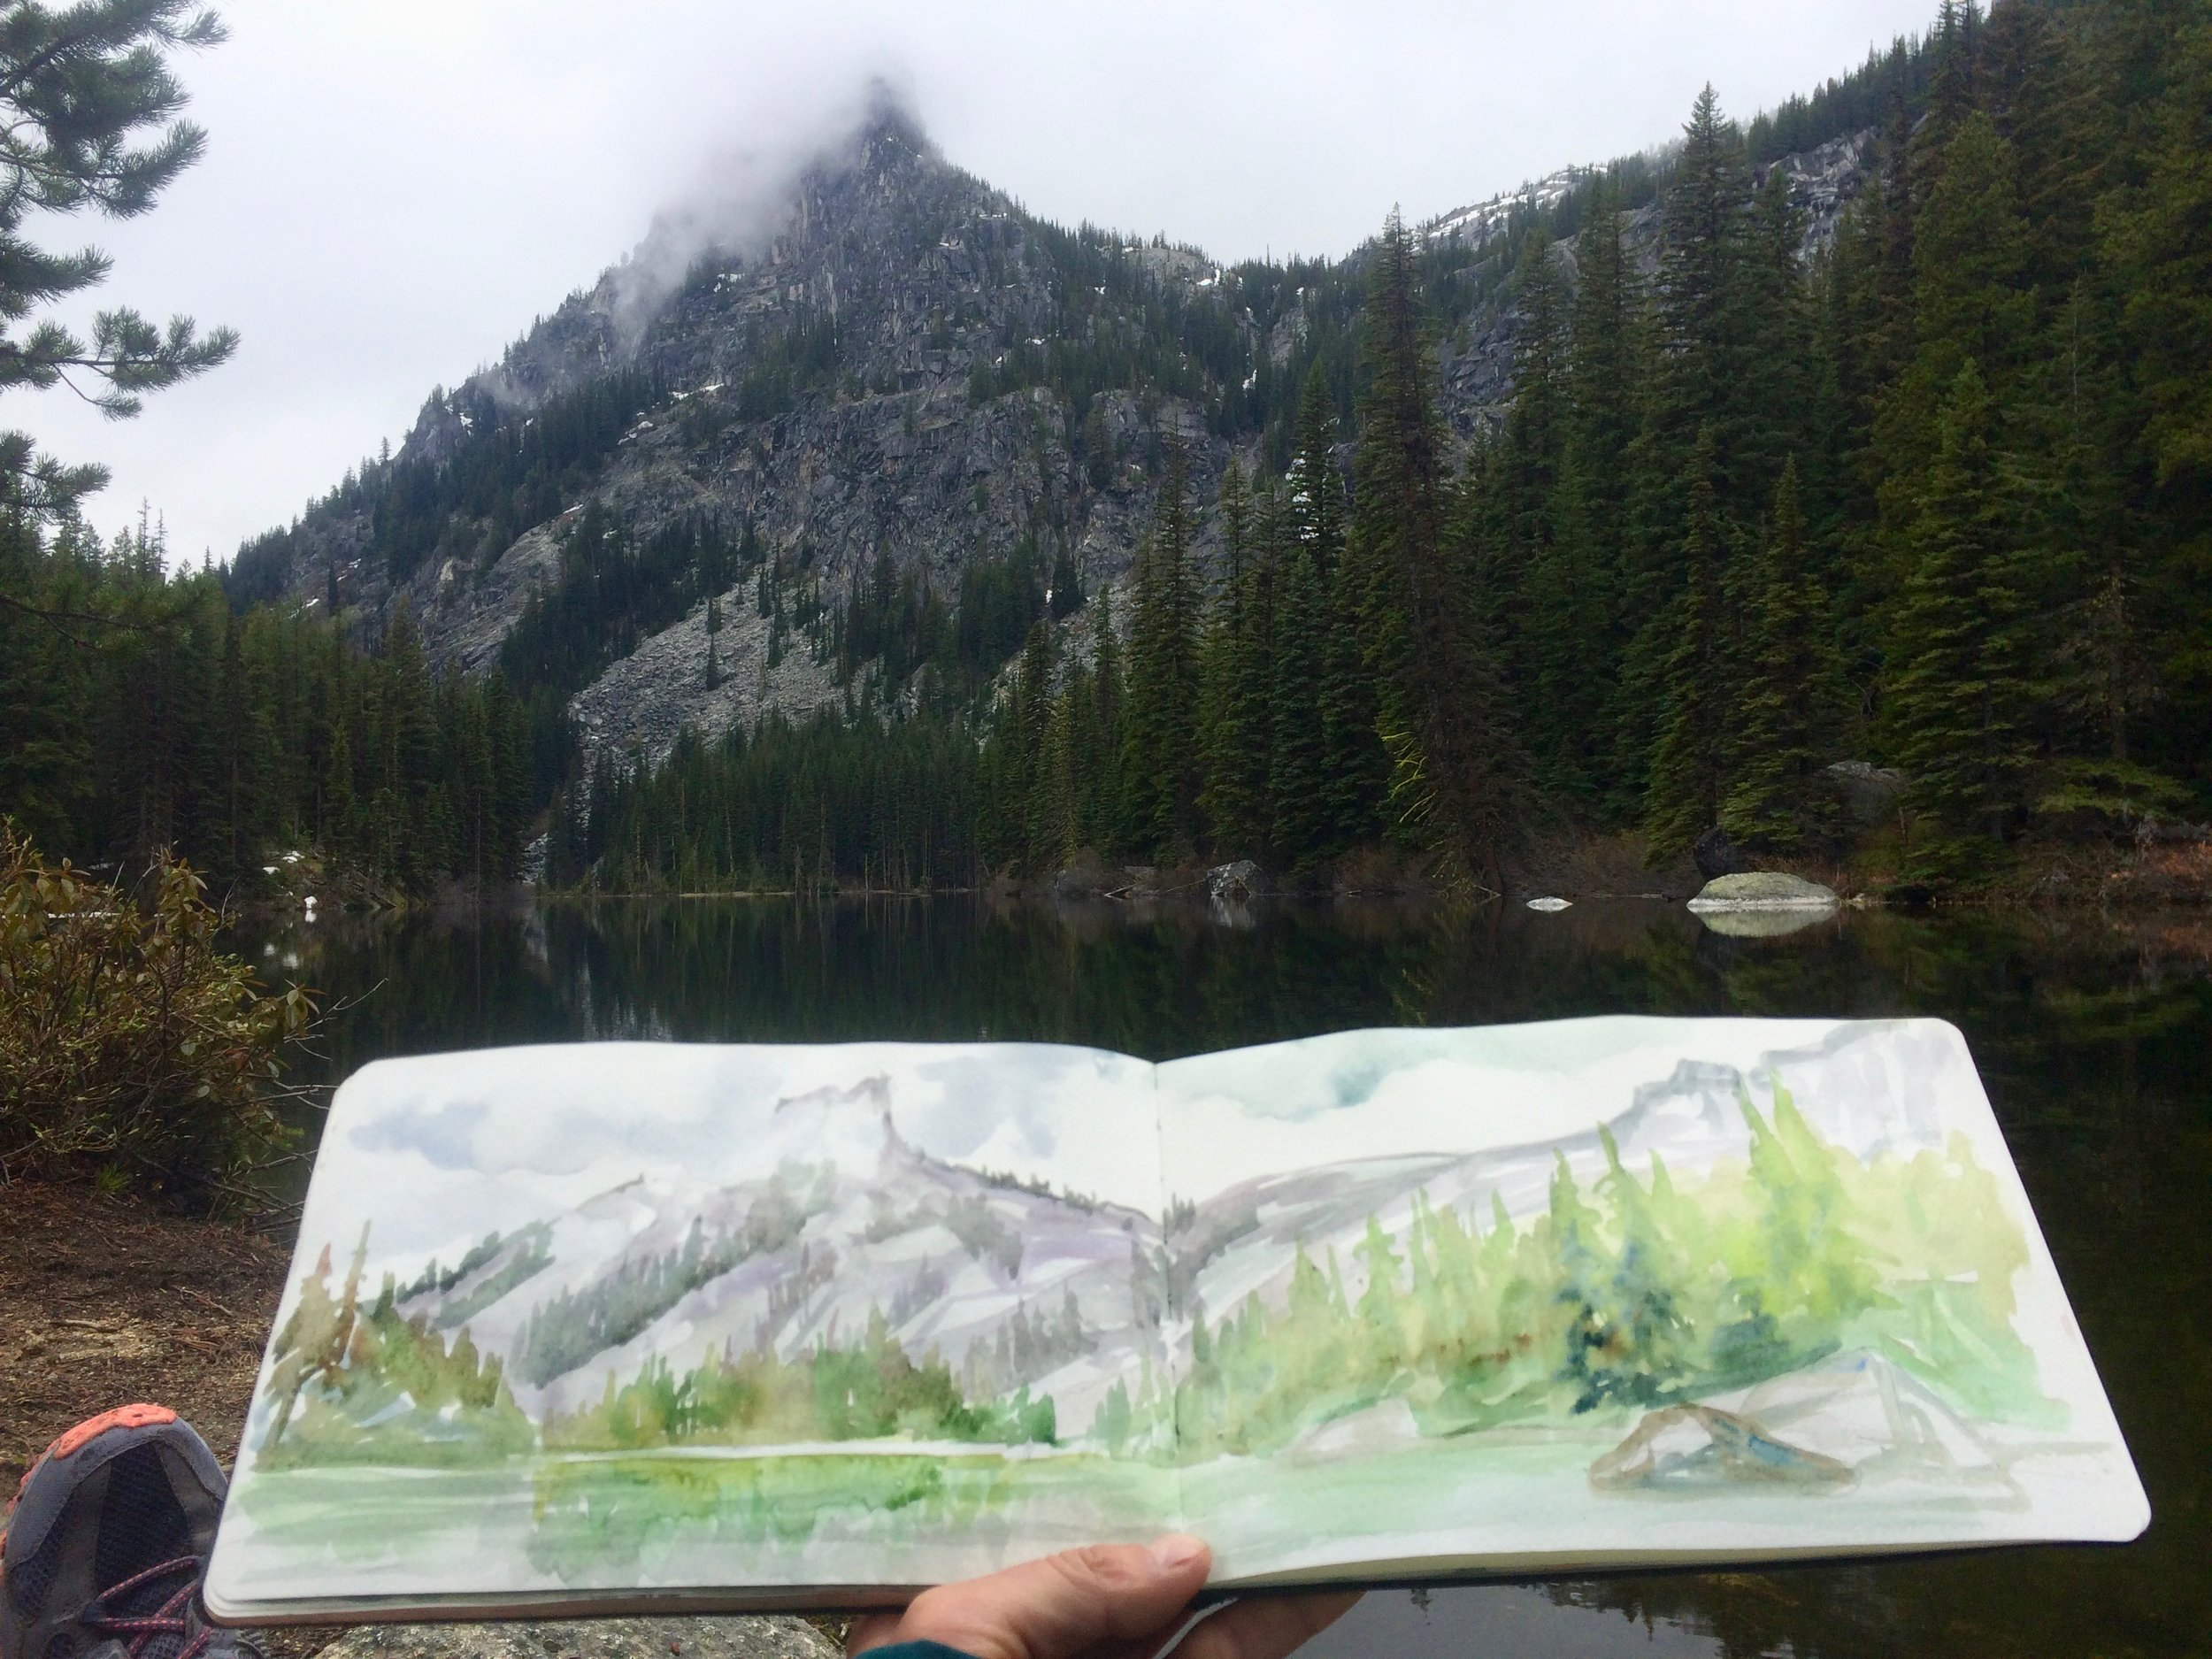 A hike through the Enchantments - Above Leavenworth likes a misty dreamland!